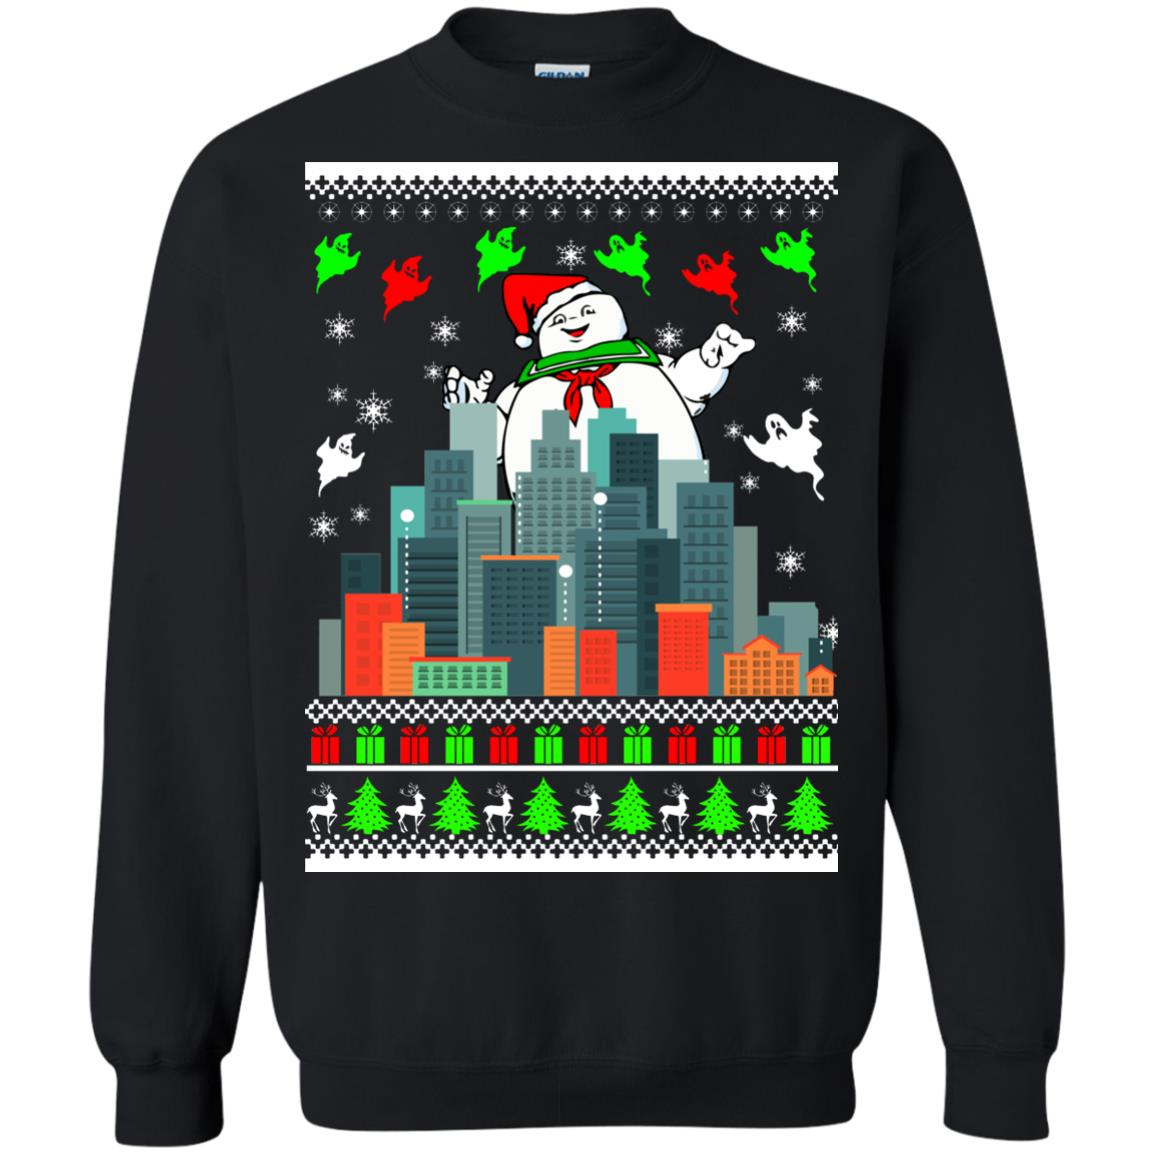 image 4472 - There is no Santa only Zuul Christmas Sweater, Shirt